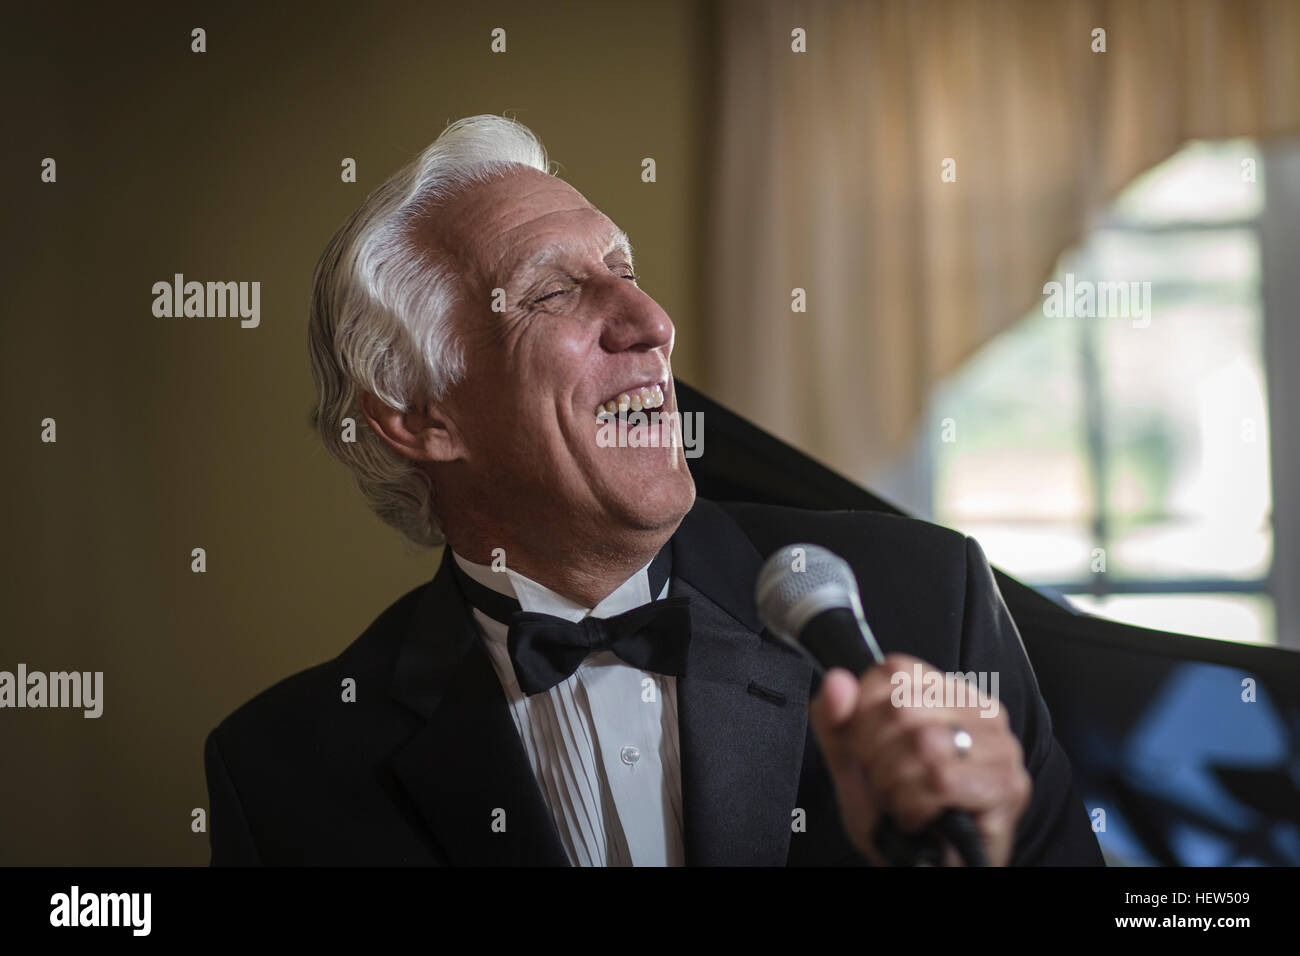 Senior man in bow tie singing into microphone - Stock Image